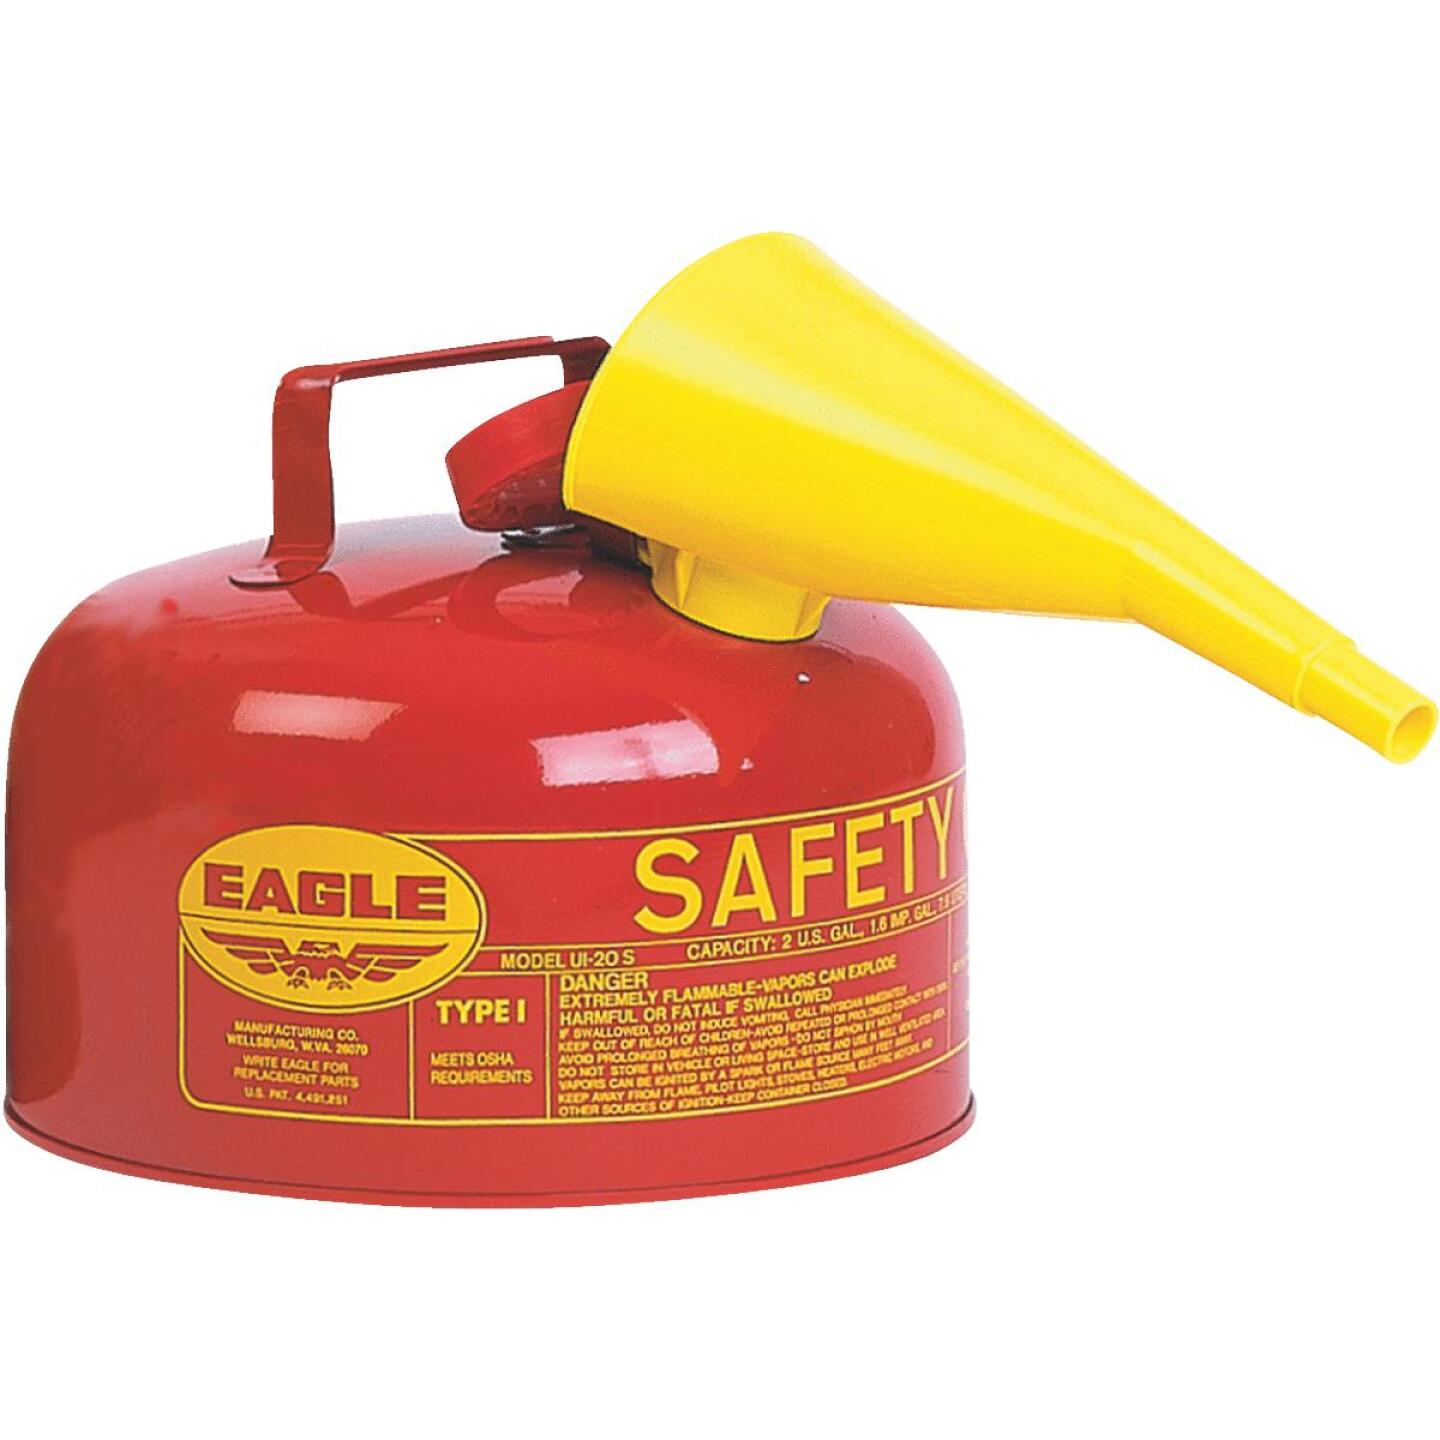 Eagle 2 Gal. Type I Galvanized Steel Gasoline Safety Fuel Can, Red Image 1